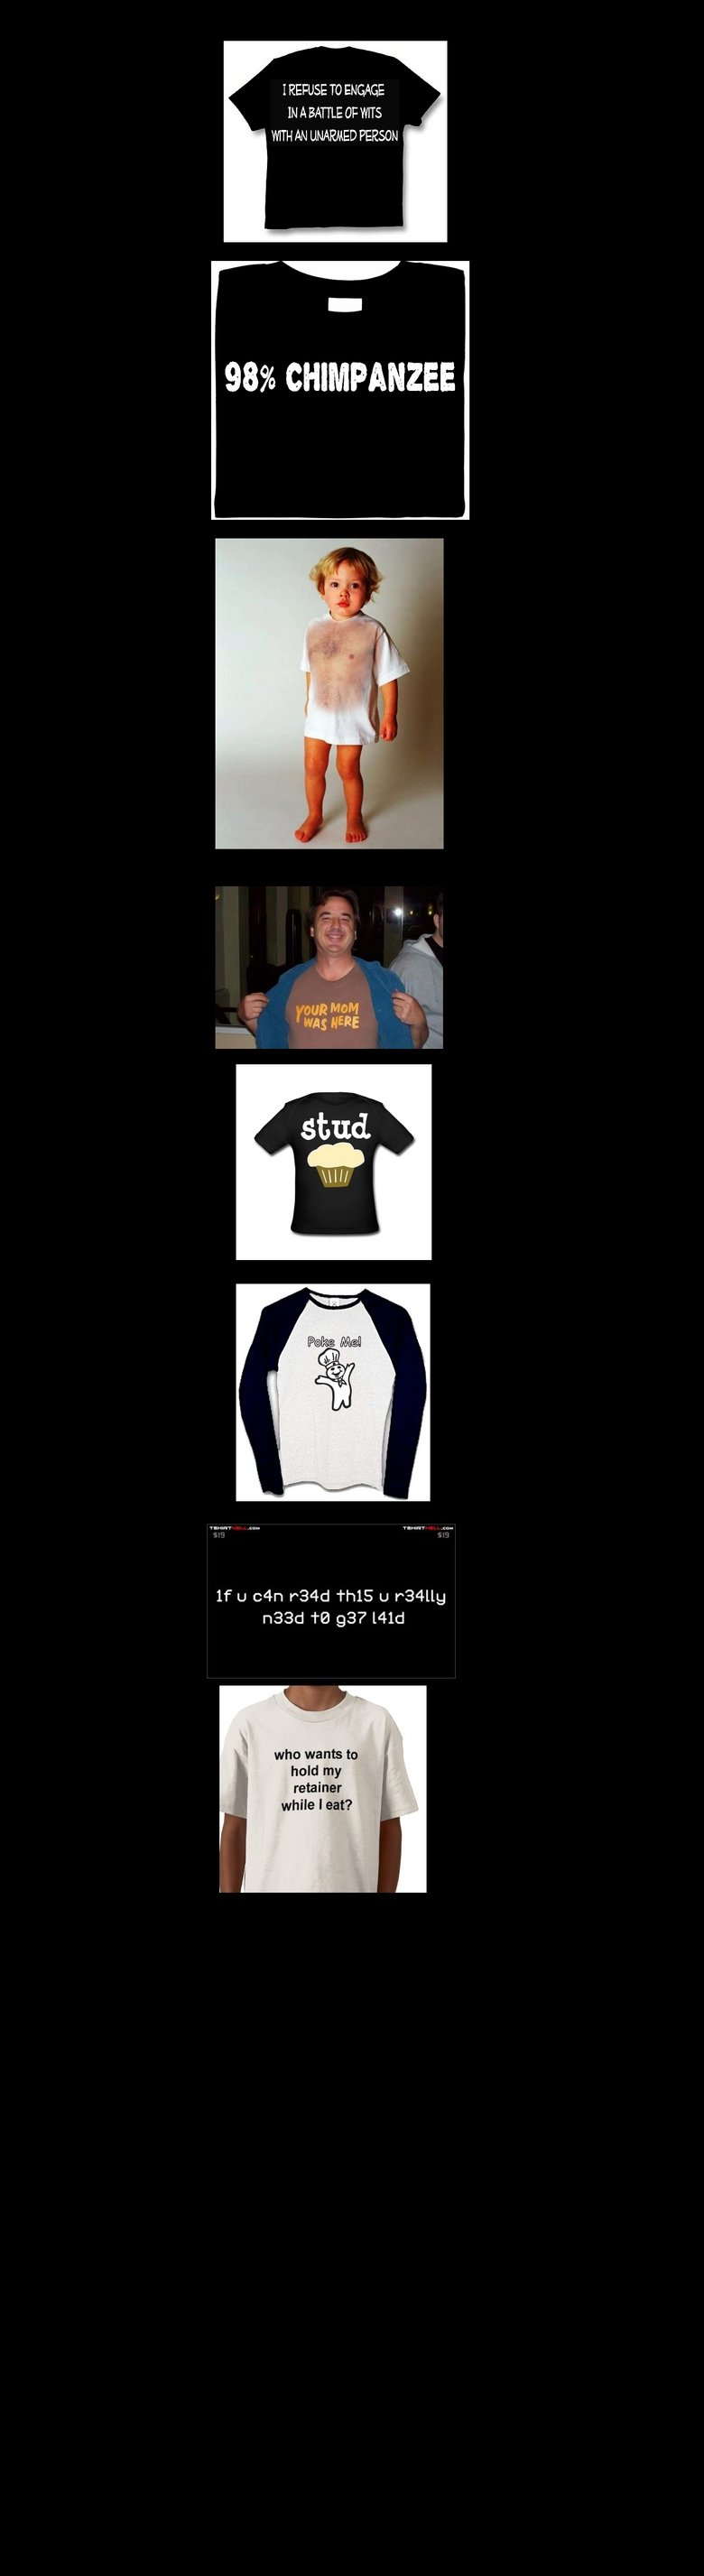 """t shirts. <a href=""""pictures/1763373/TRUTH/"""" target=blank>funnyjunk.com/funnypictures/1763373/TRUTH/</a><br /> <a href=""""pictu"""